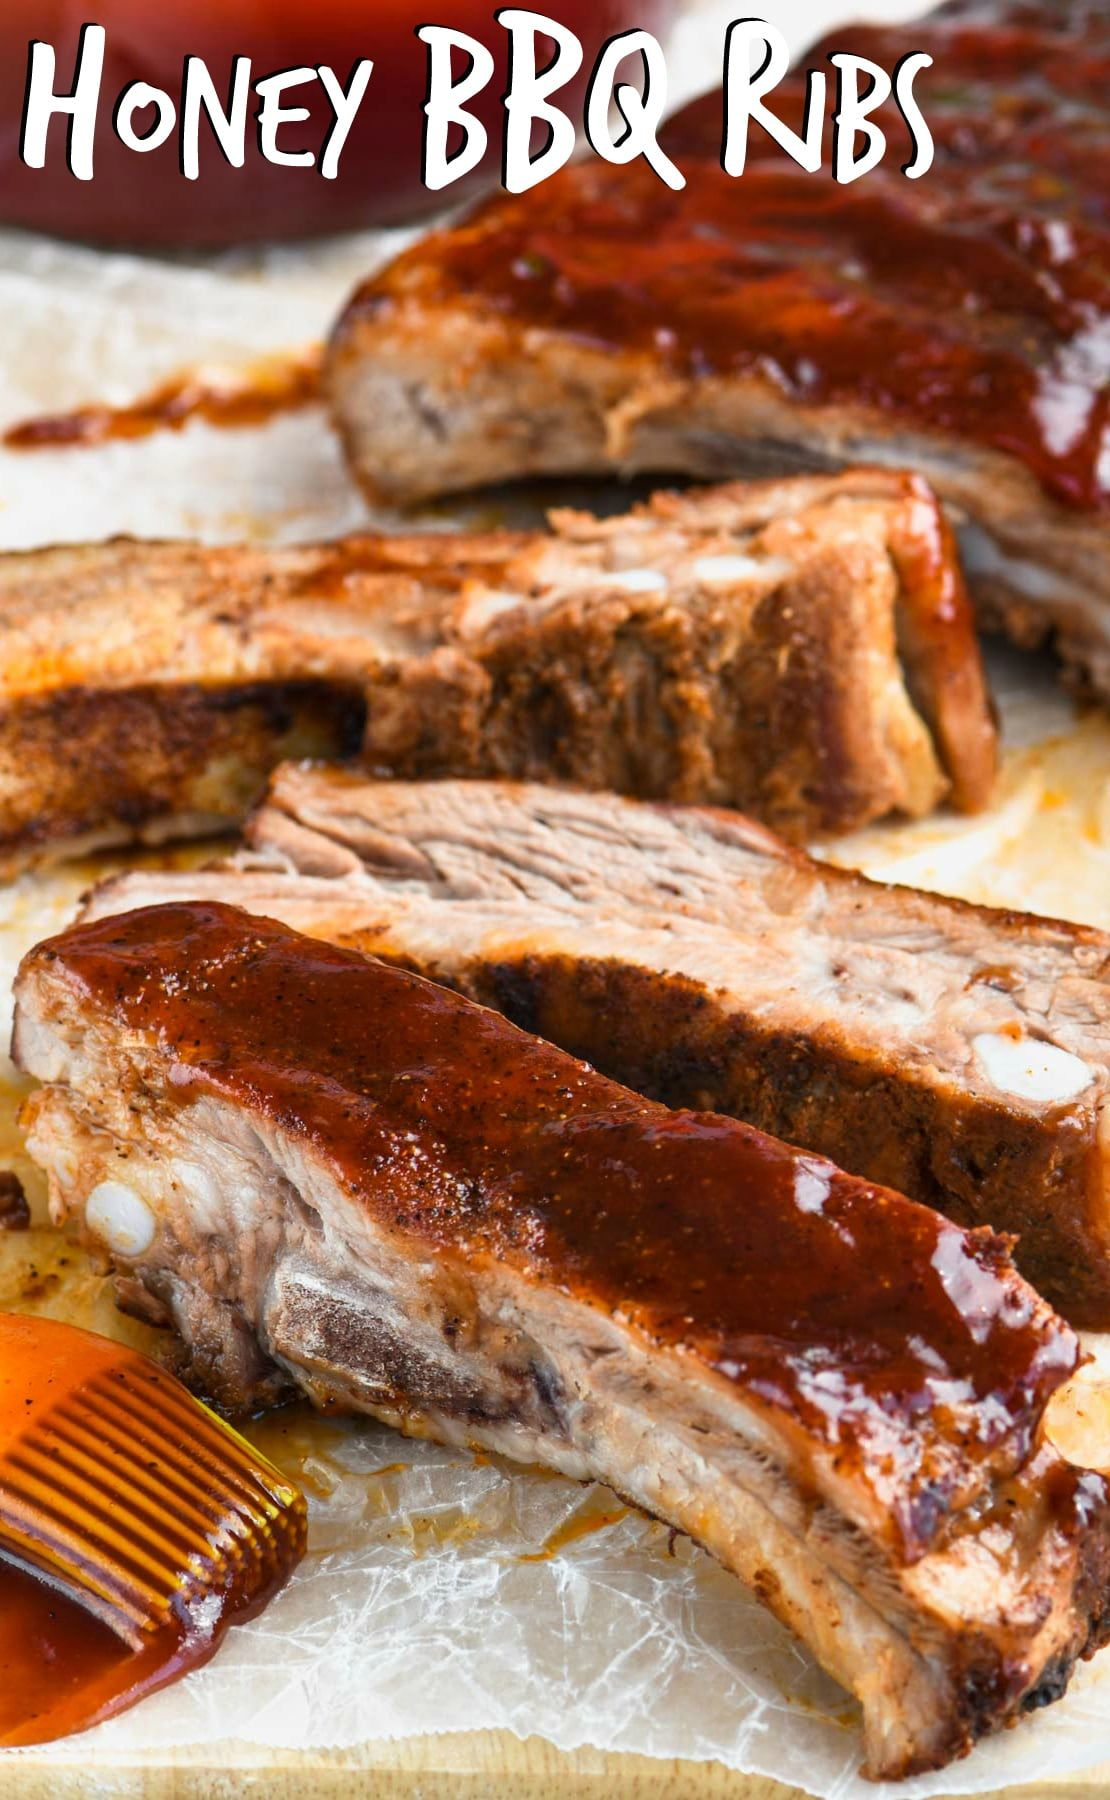 These Honey Bbq Ribs Are Fall Off The Bone Delicious And Even Better They Are Ribs In The Oven Easy To Make And Even Honey Bbq Bbq Recipes Ribs Rib Recipes